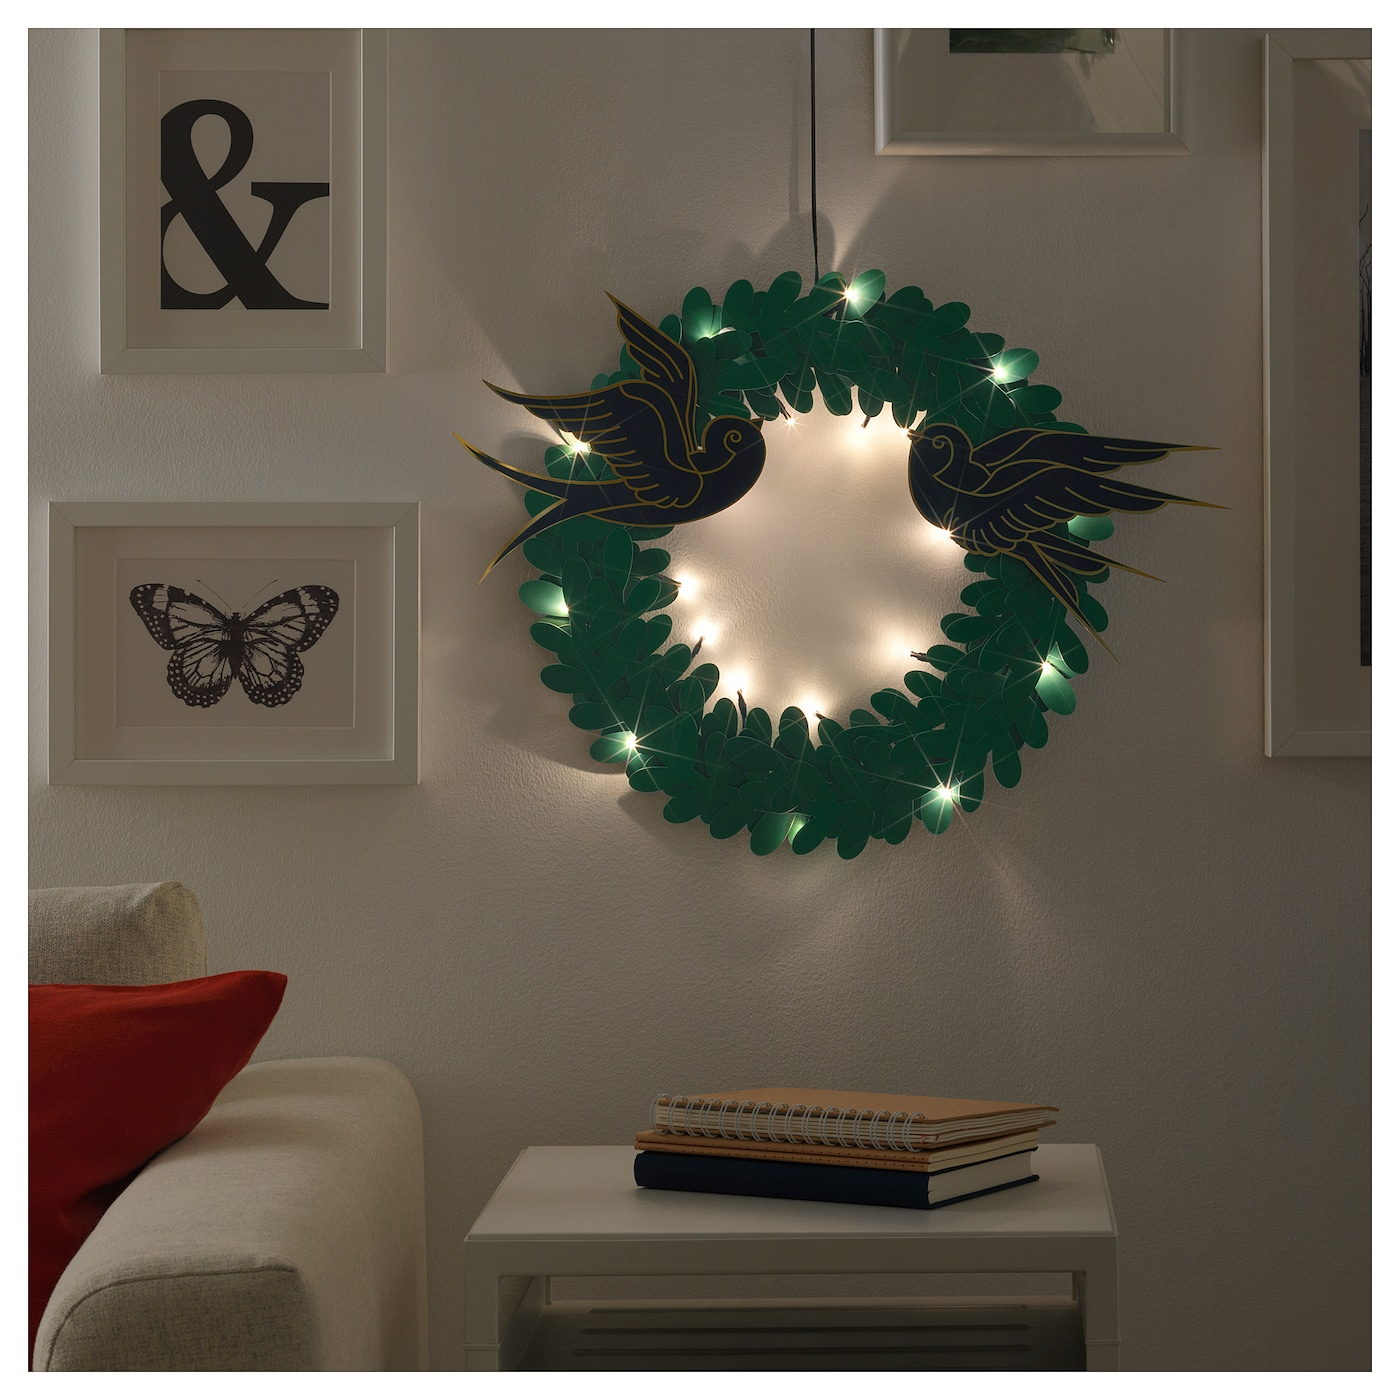 IKEA STRÅLA LED wreath Gives a warm, cosy glow and spreads the holiday atmosphere in your home.